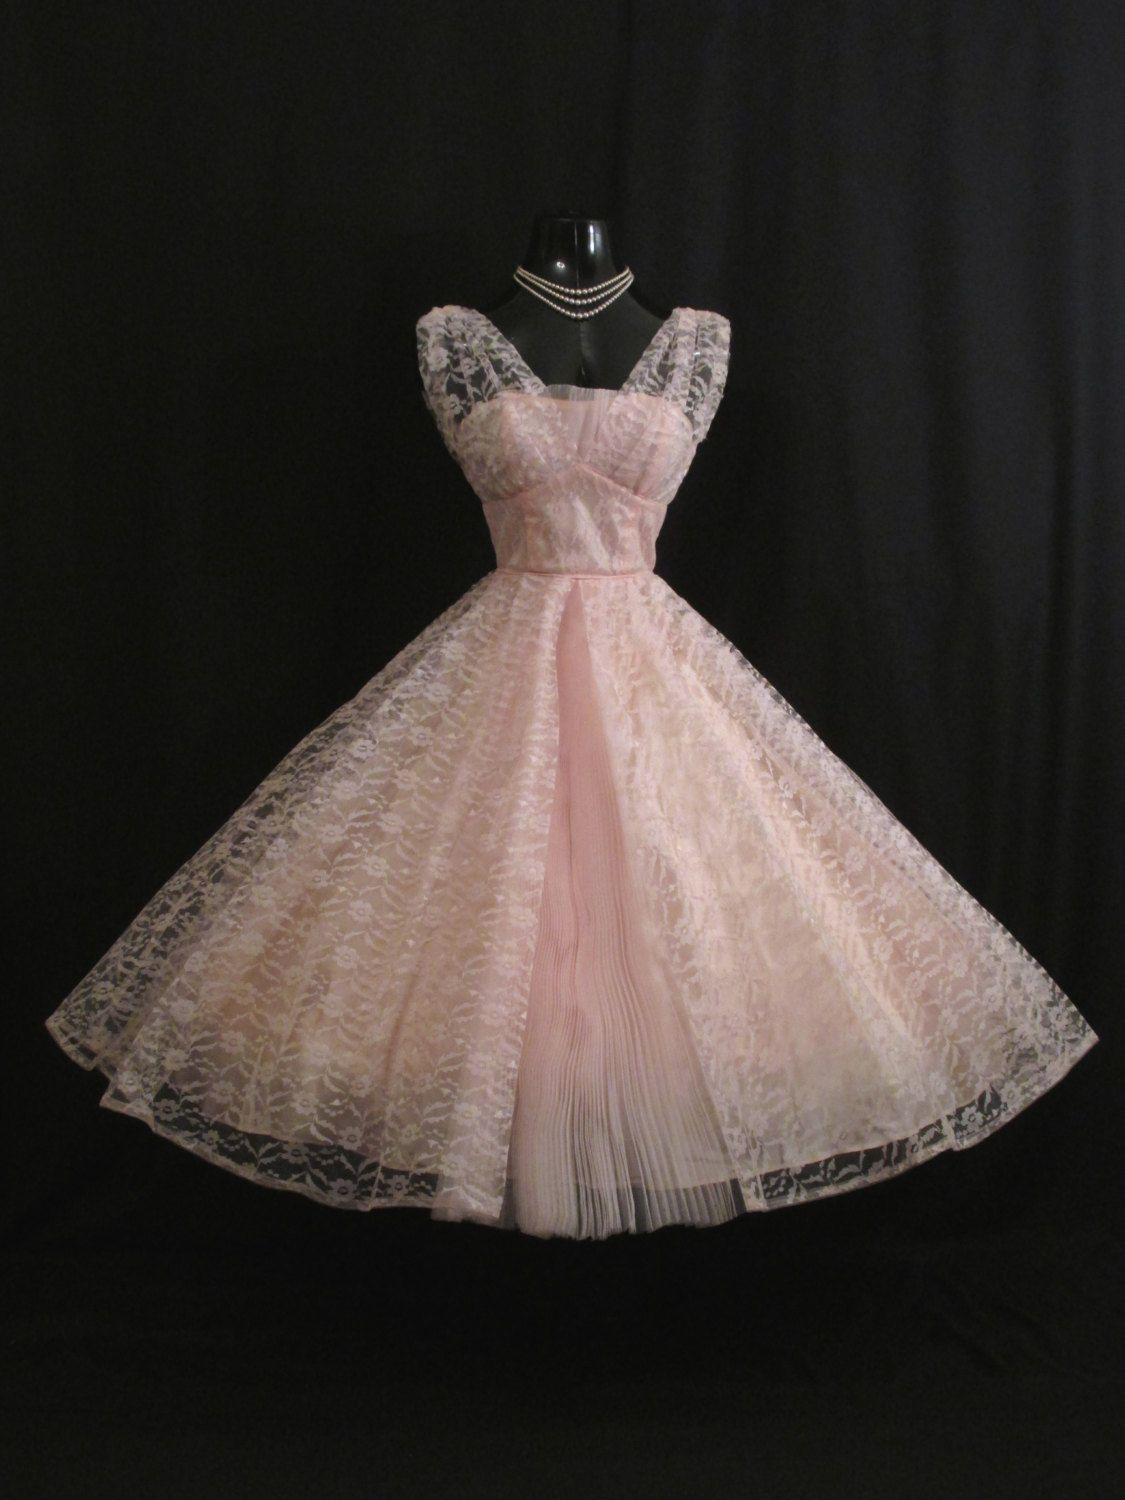 Vintage 1950\'s 50s Bombshell Baby PINK Lace Tulle Circle Skirt PROM ...